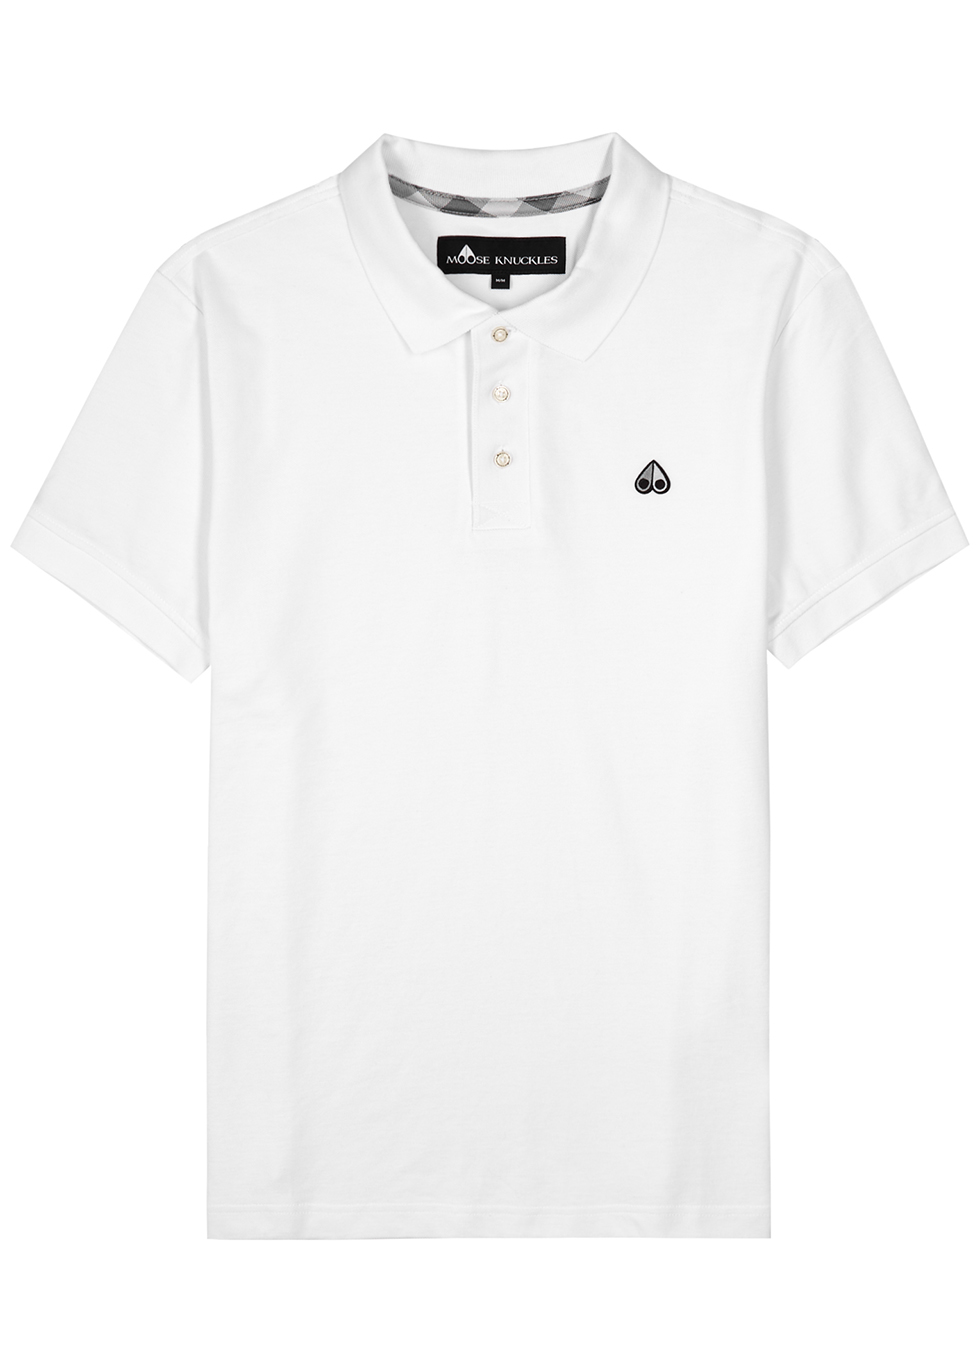 White piqué cotton polo shirt